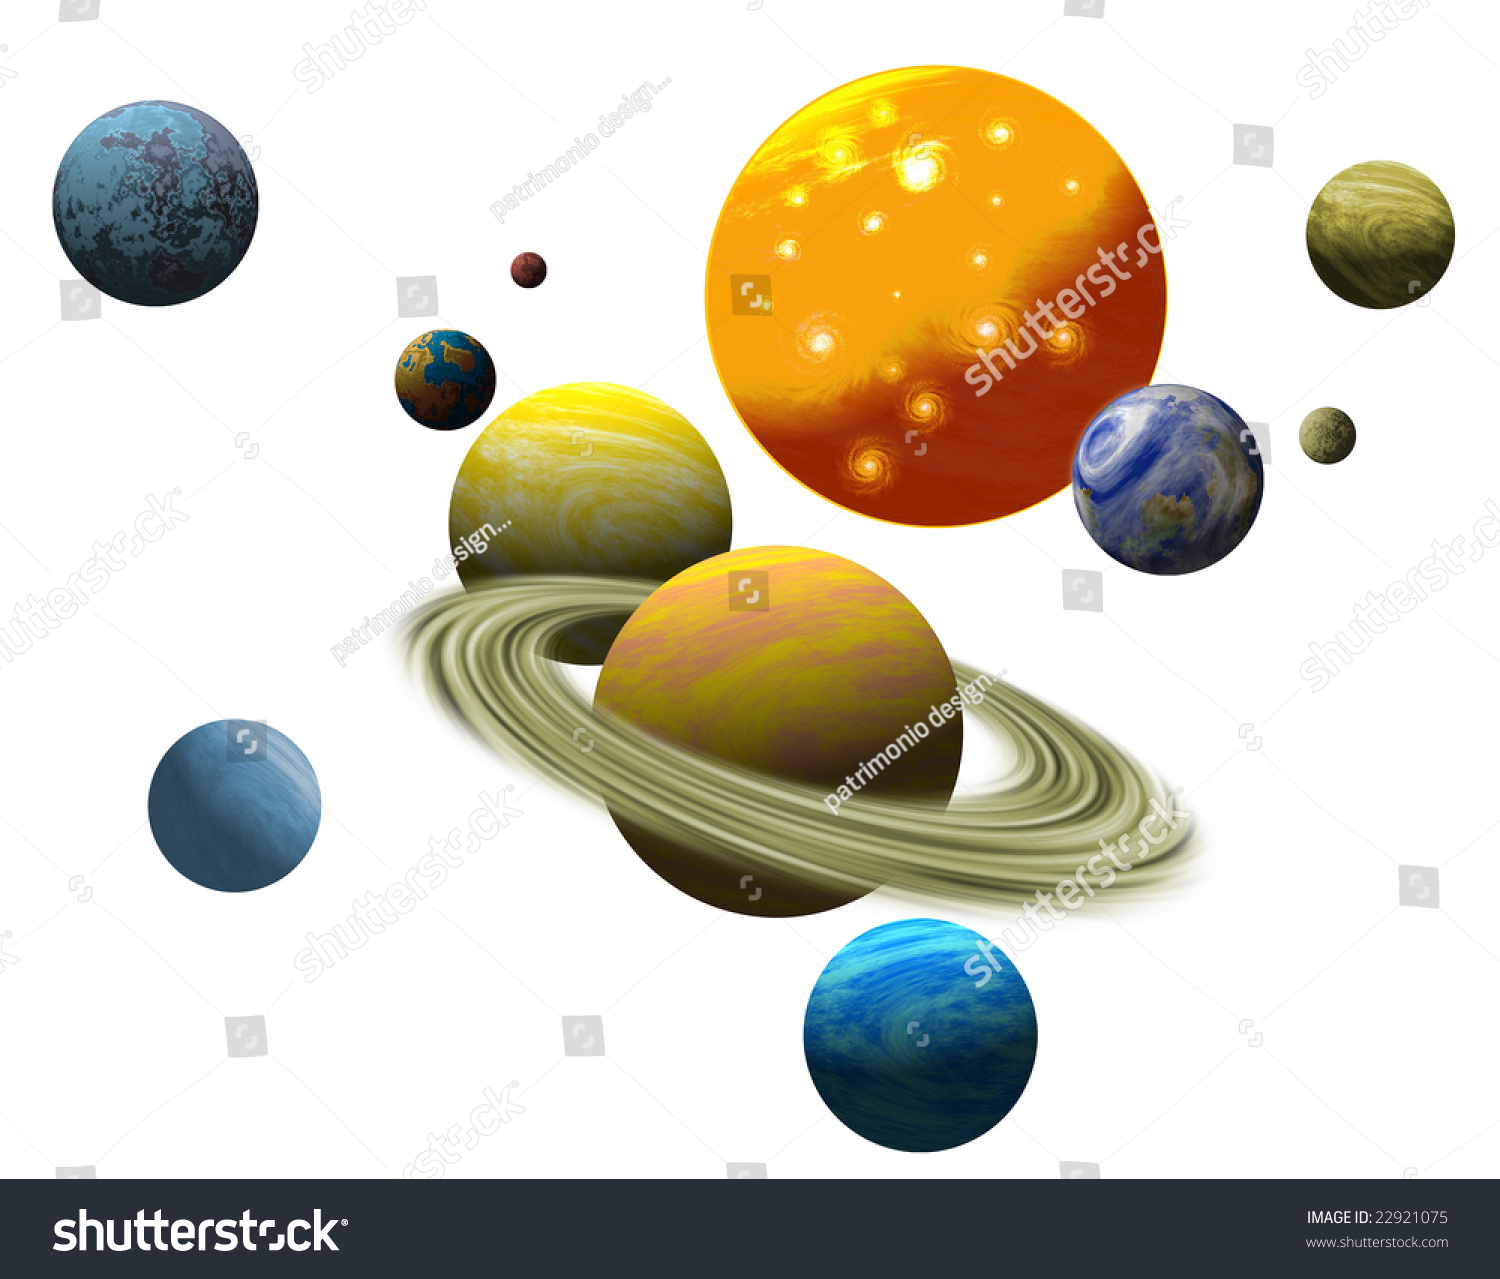 The Solar System Isolated On White Background Stock Photo 22921075 : Shutterstock